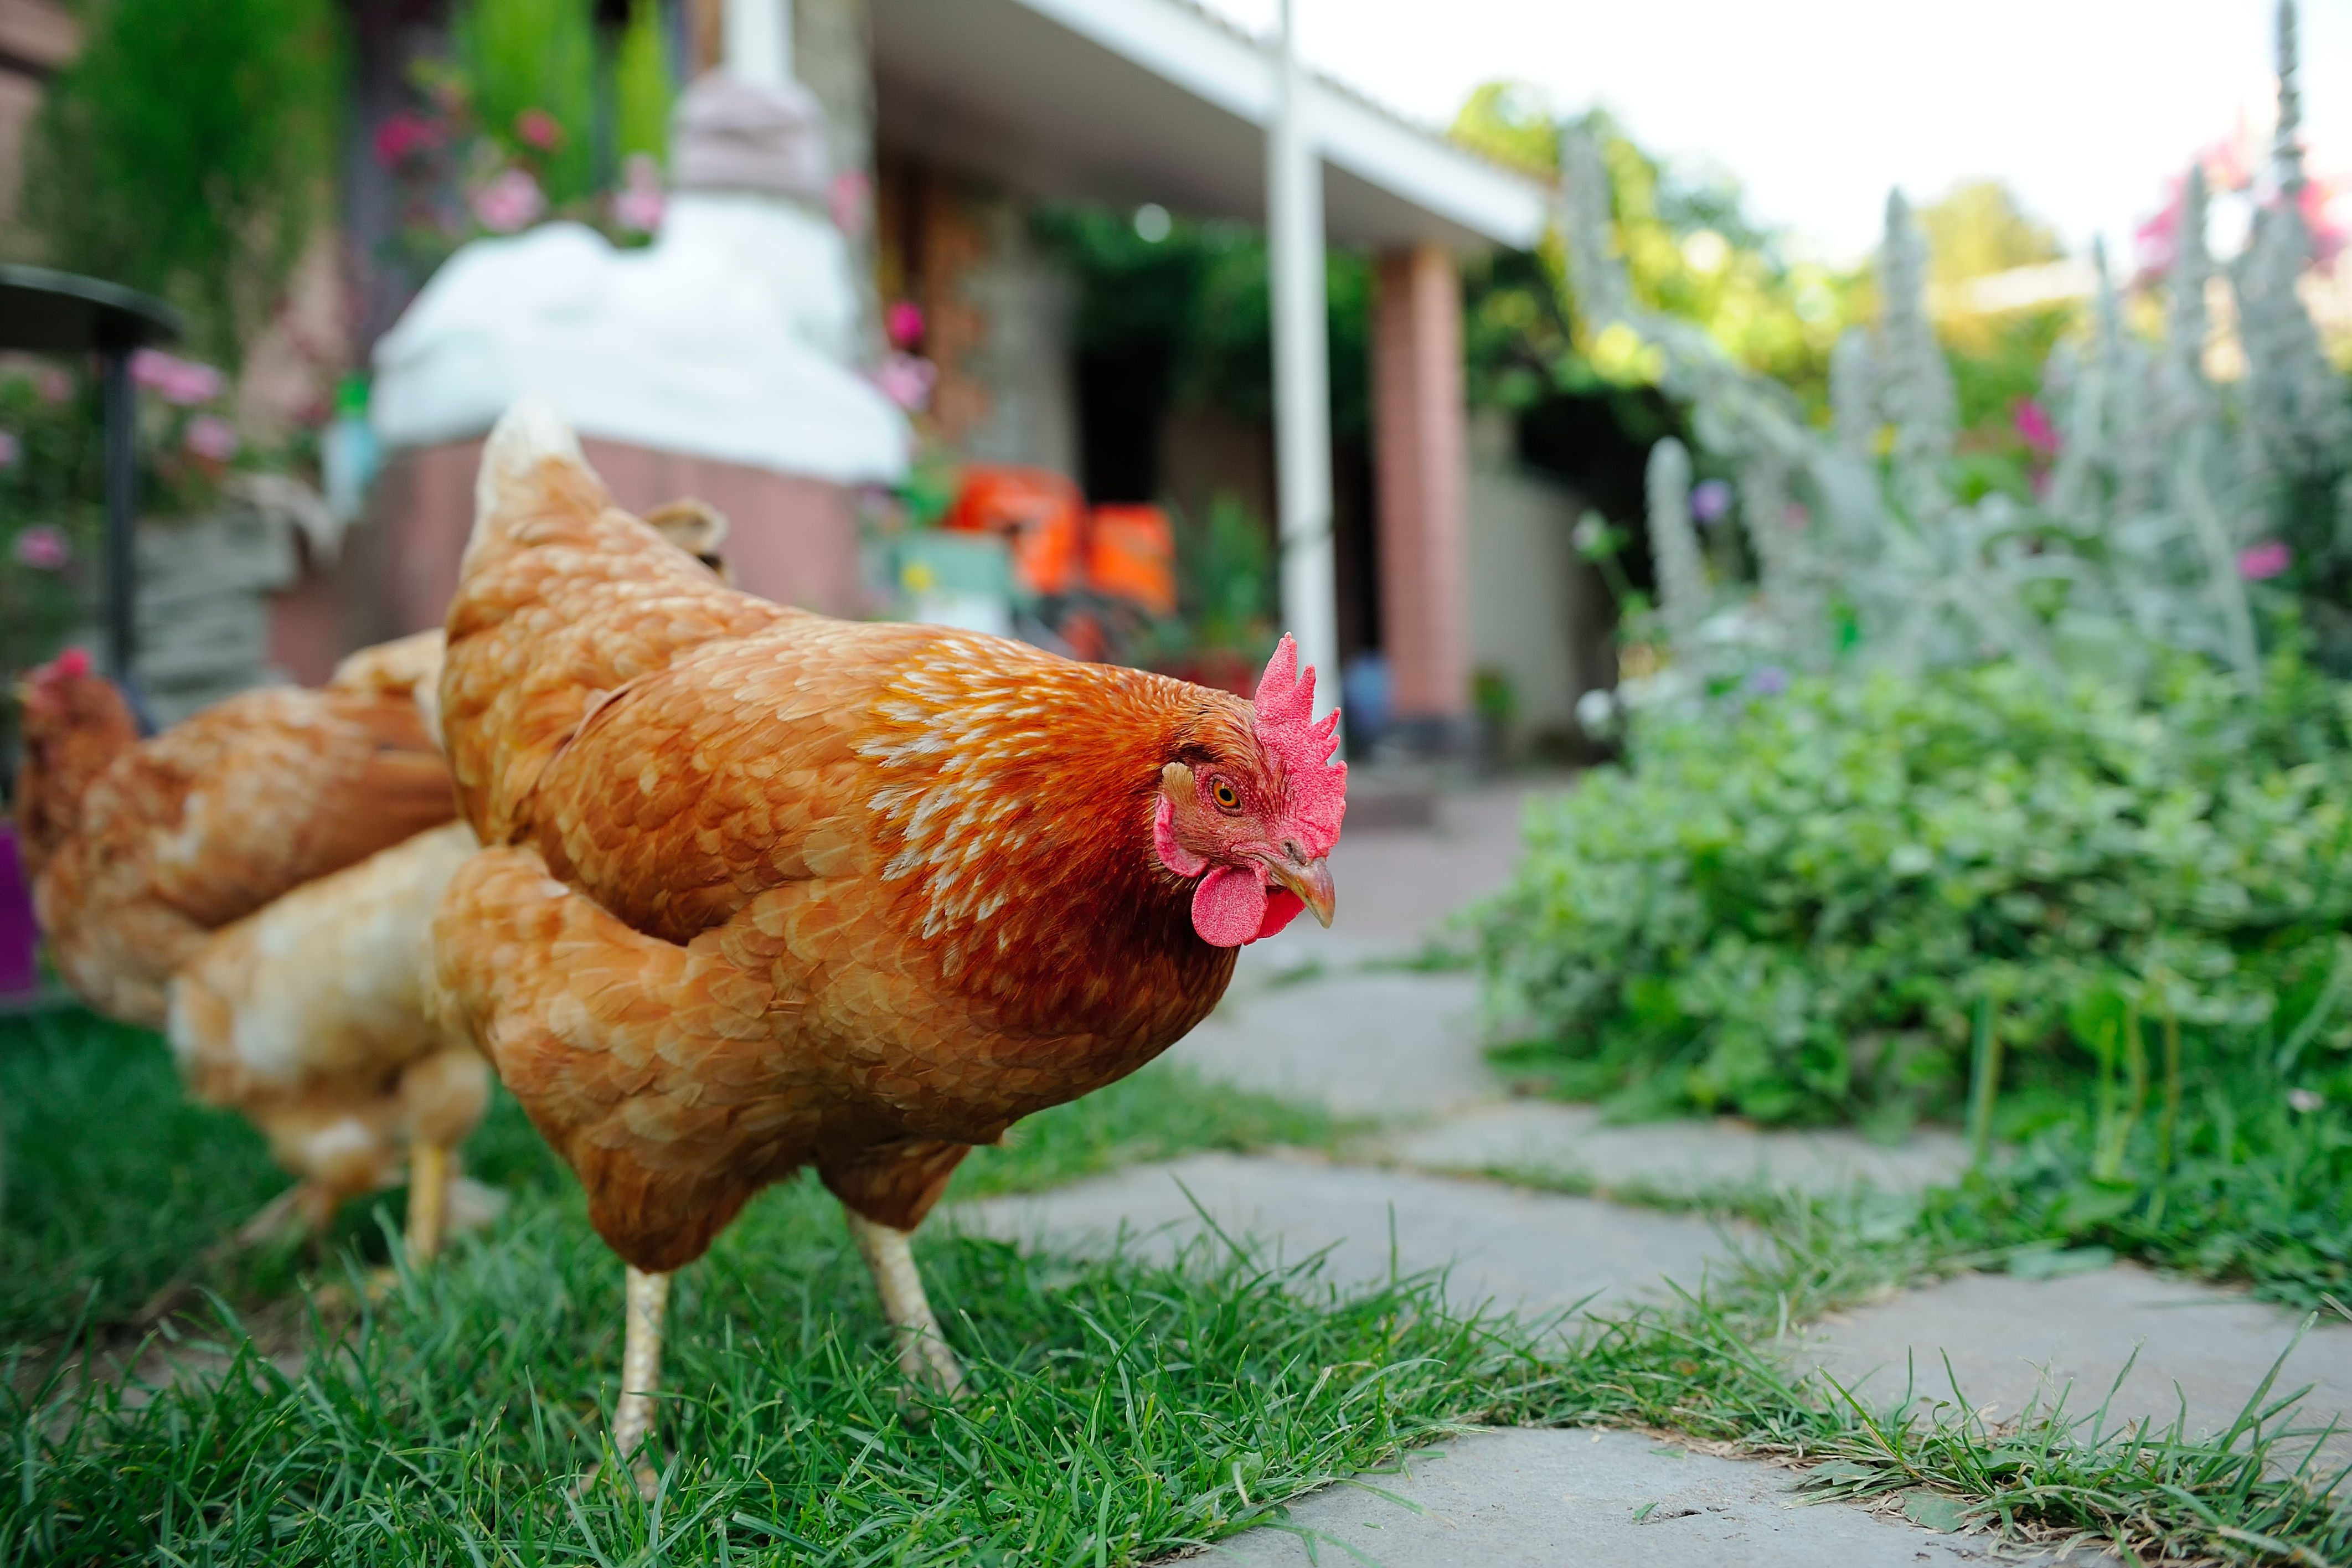 Sorry to Ruffle Any Feathers, but Backyard Chickens Can Pose a Serious Health Risk